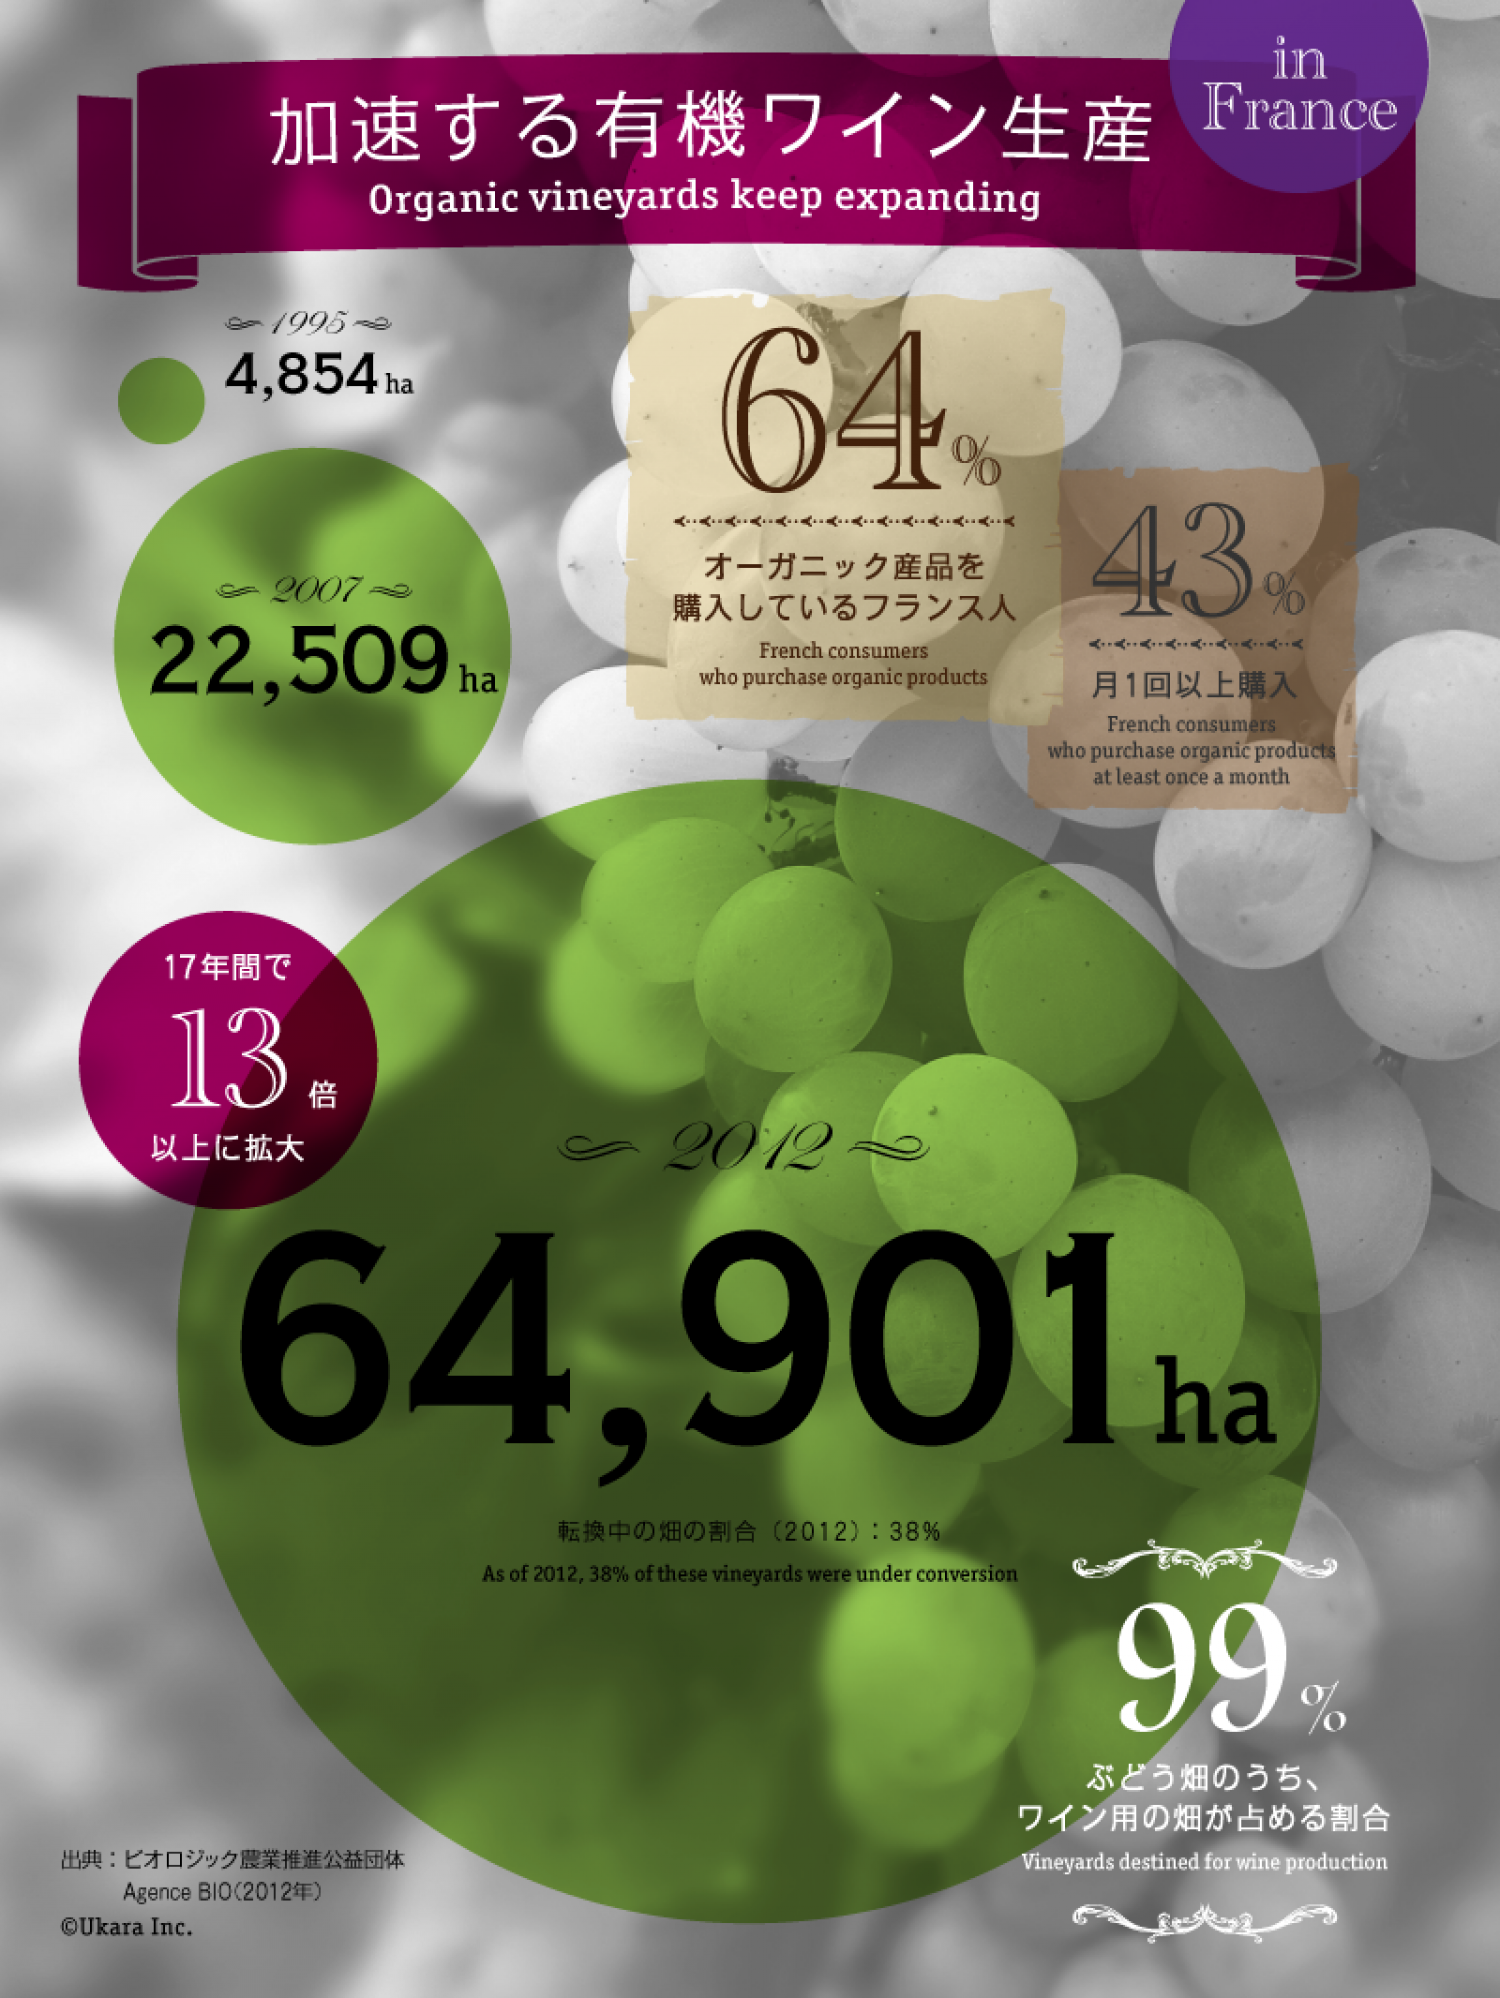 Organic vineyard keep expanding in France Infographic